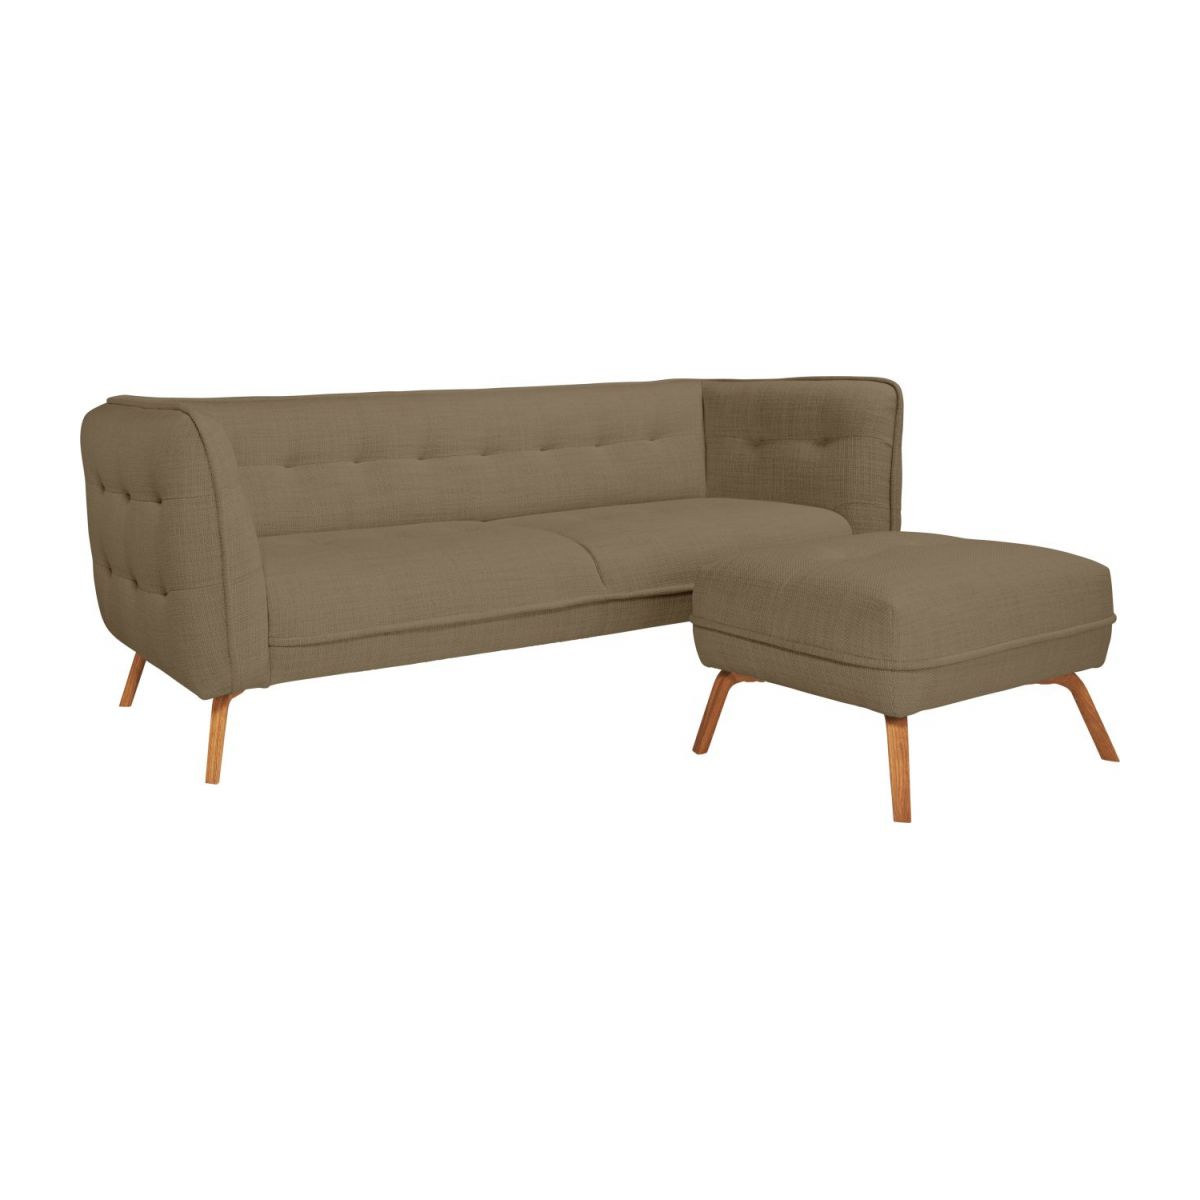 3 seater sofa in Fasoli fabric, jatoba brown and oak legs n°9